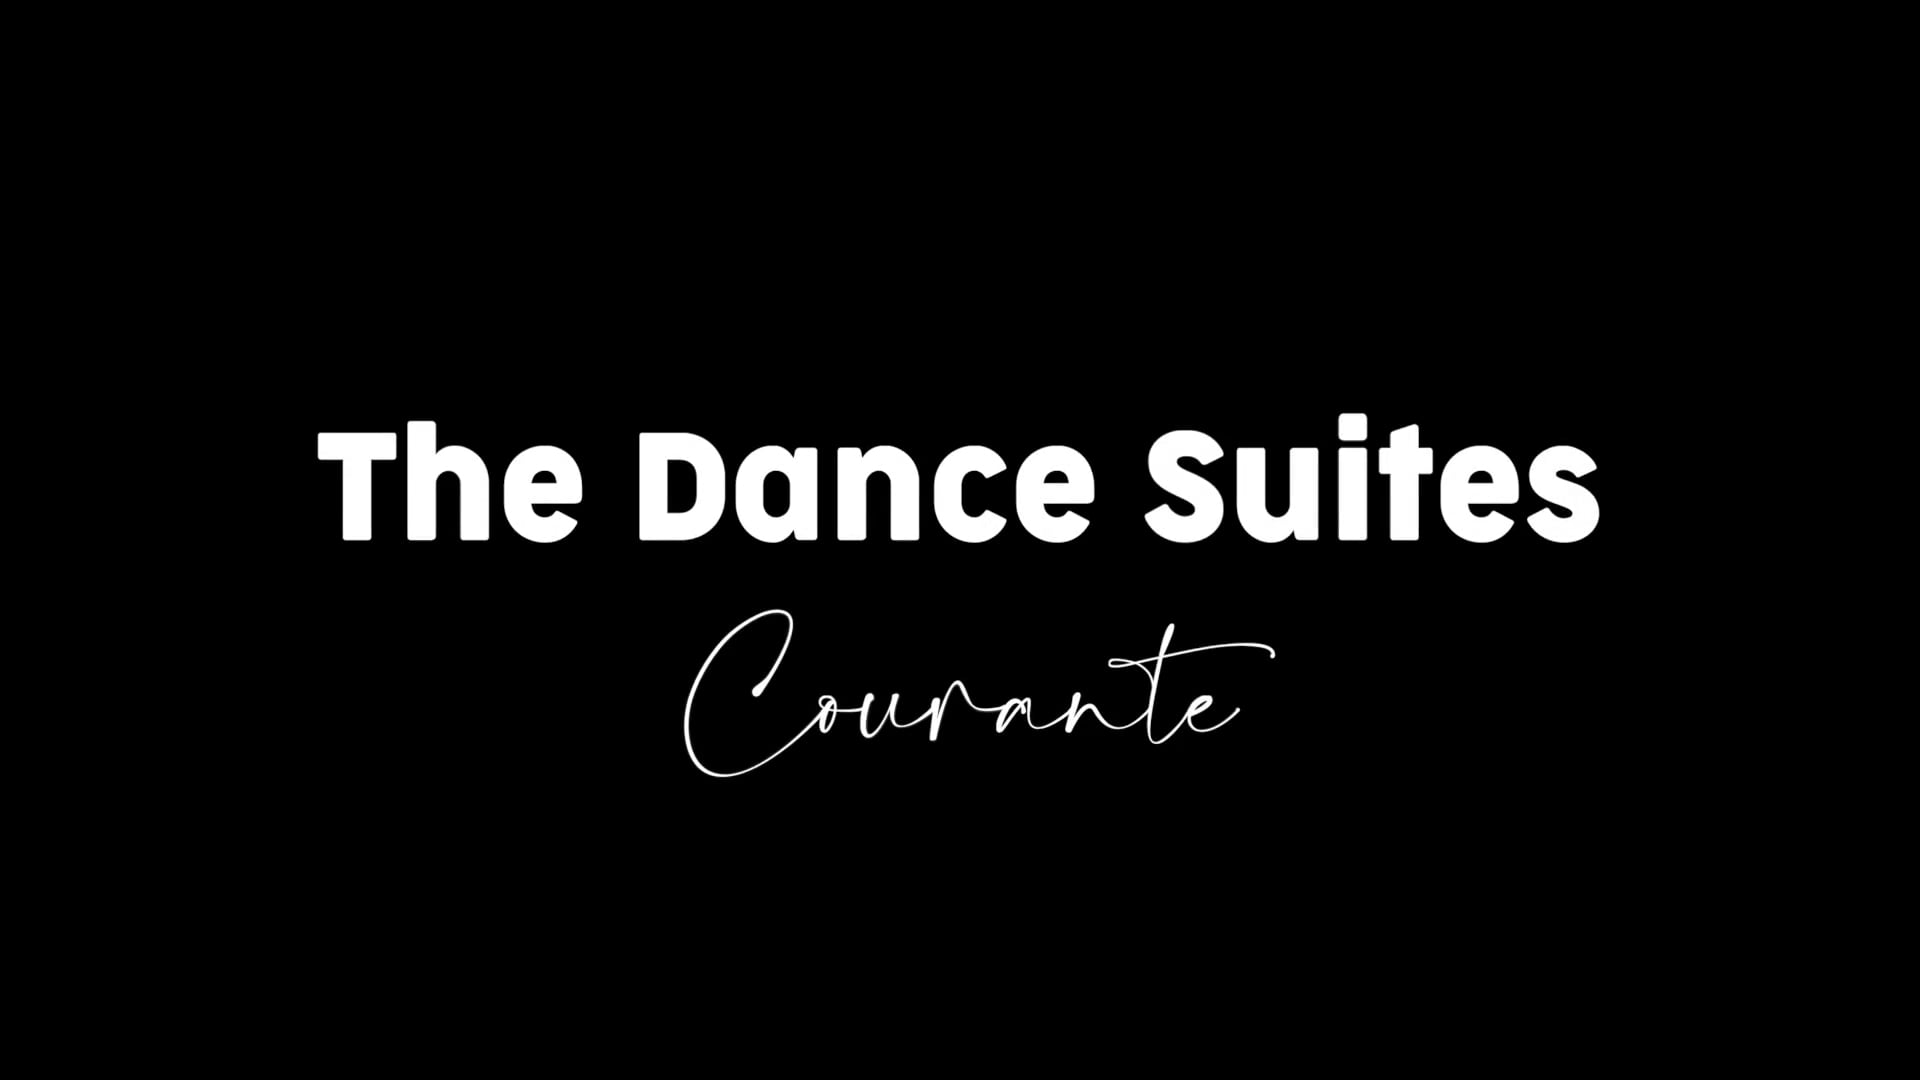 The Dance Suites: Courante